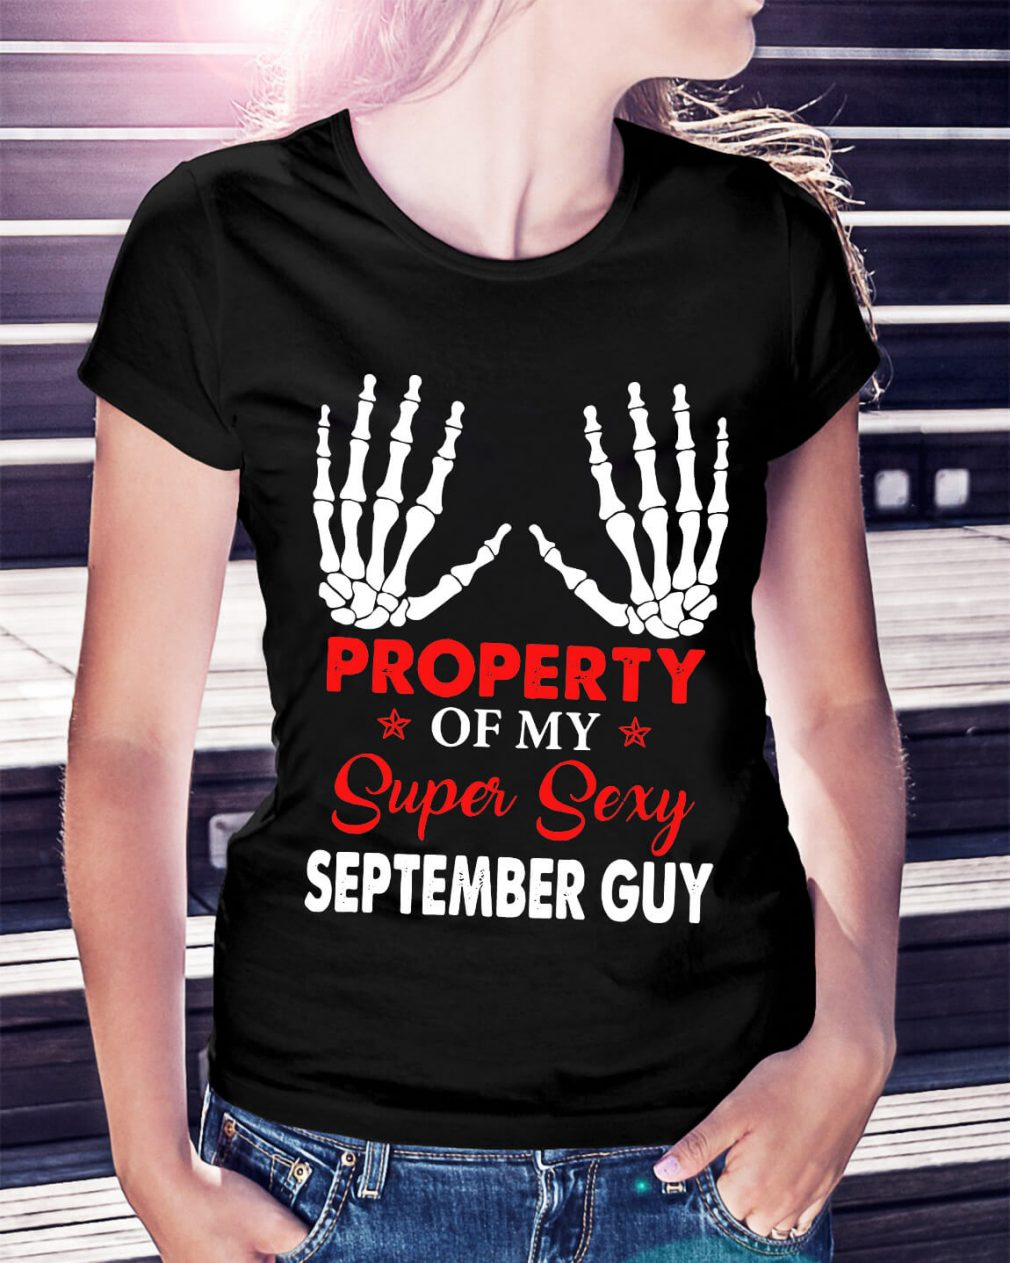 Property of my super sexy September guy shirt